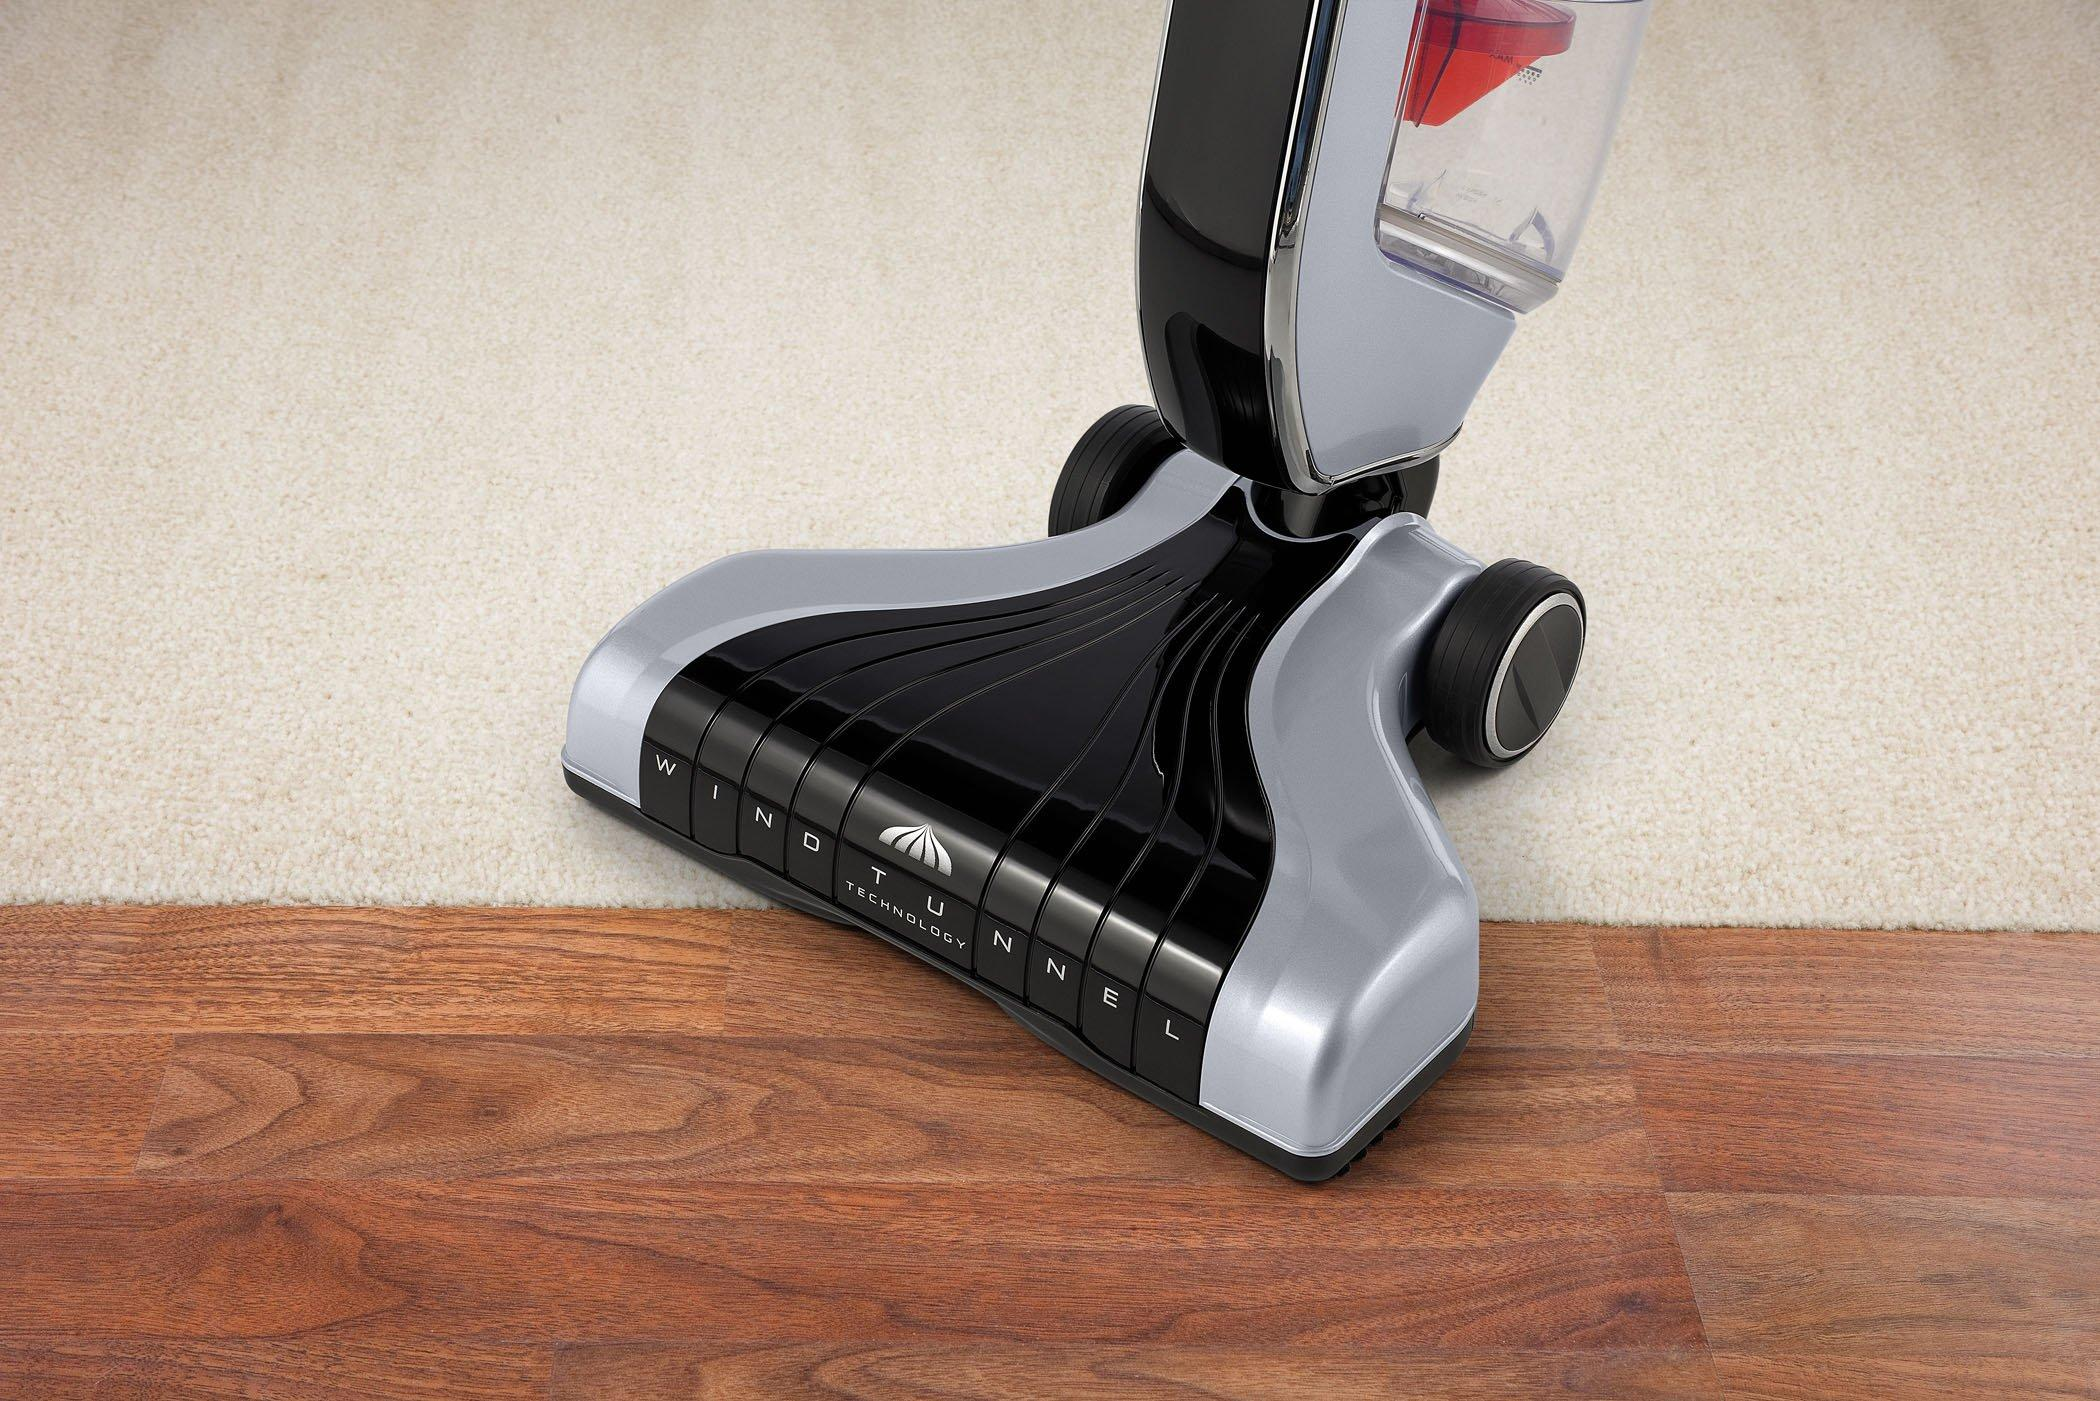 LiNX Rechargeable Stick Vacuum4